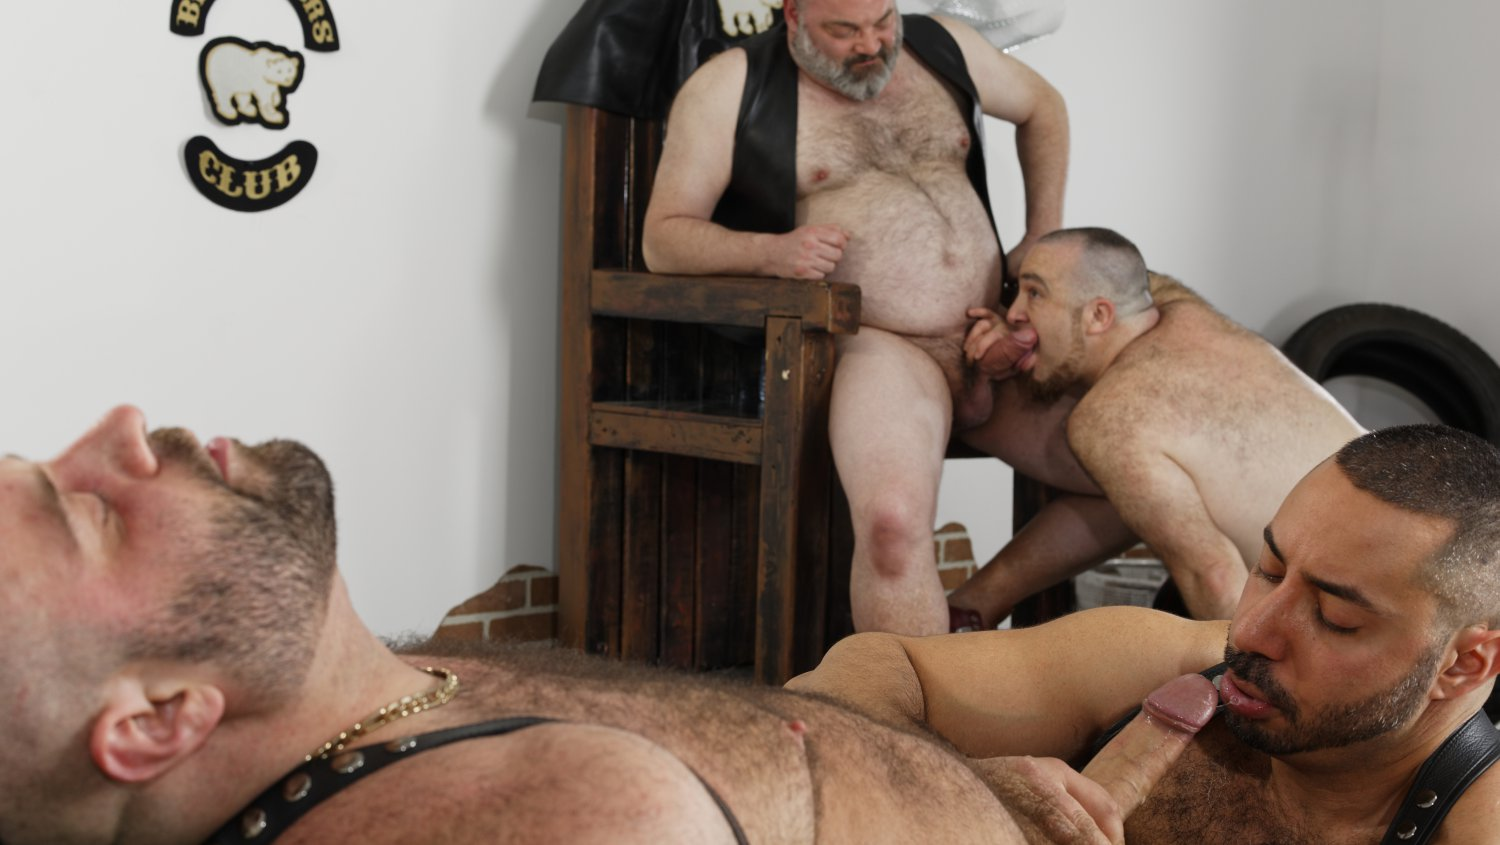 A. Badri, T. Riant, B. Nastee and M. Angel - HairyAndRaw Xmovie Com